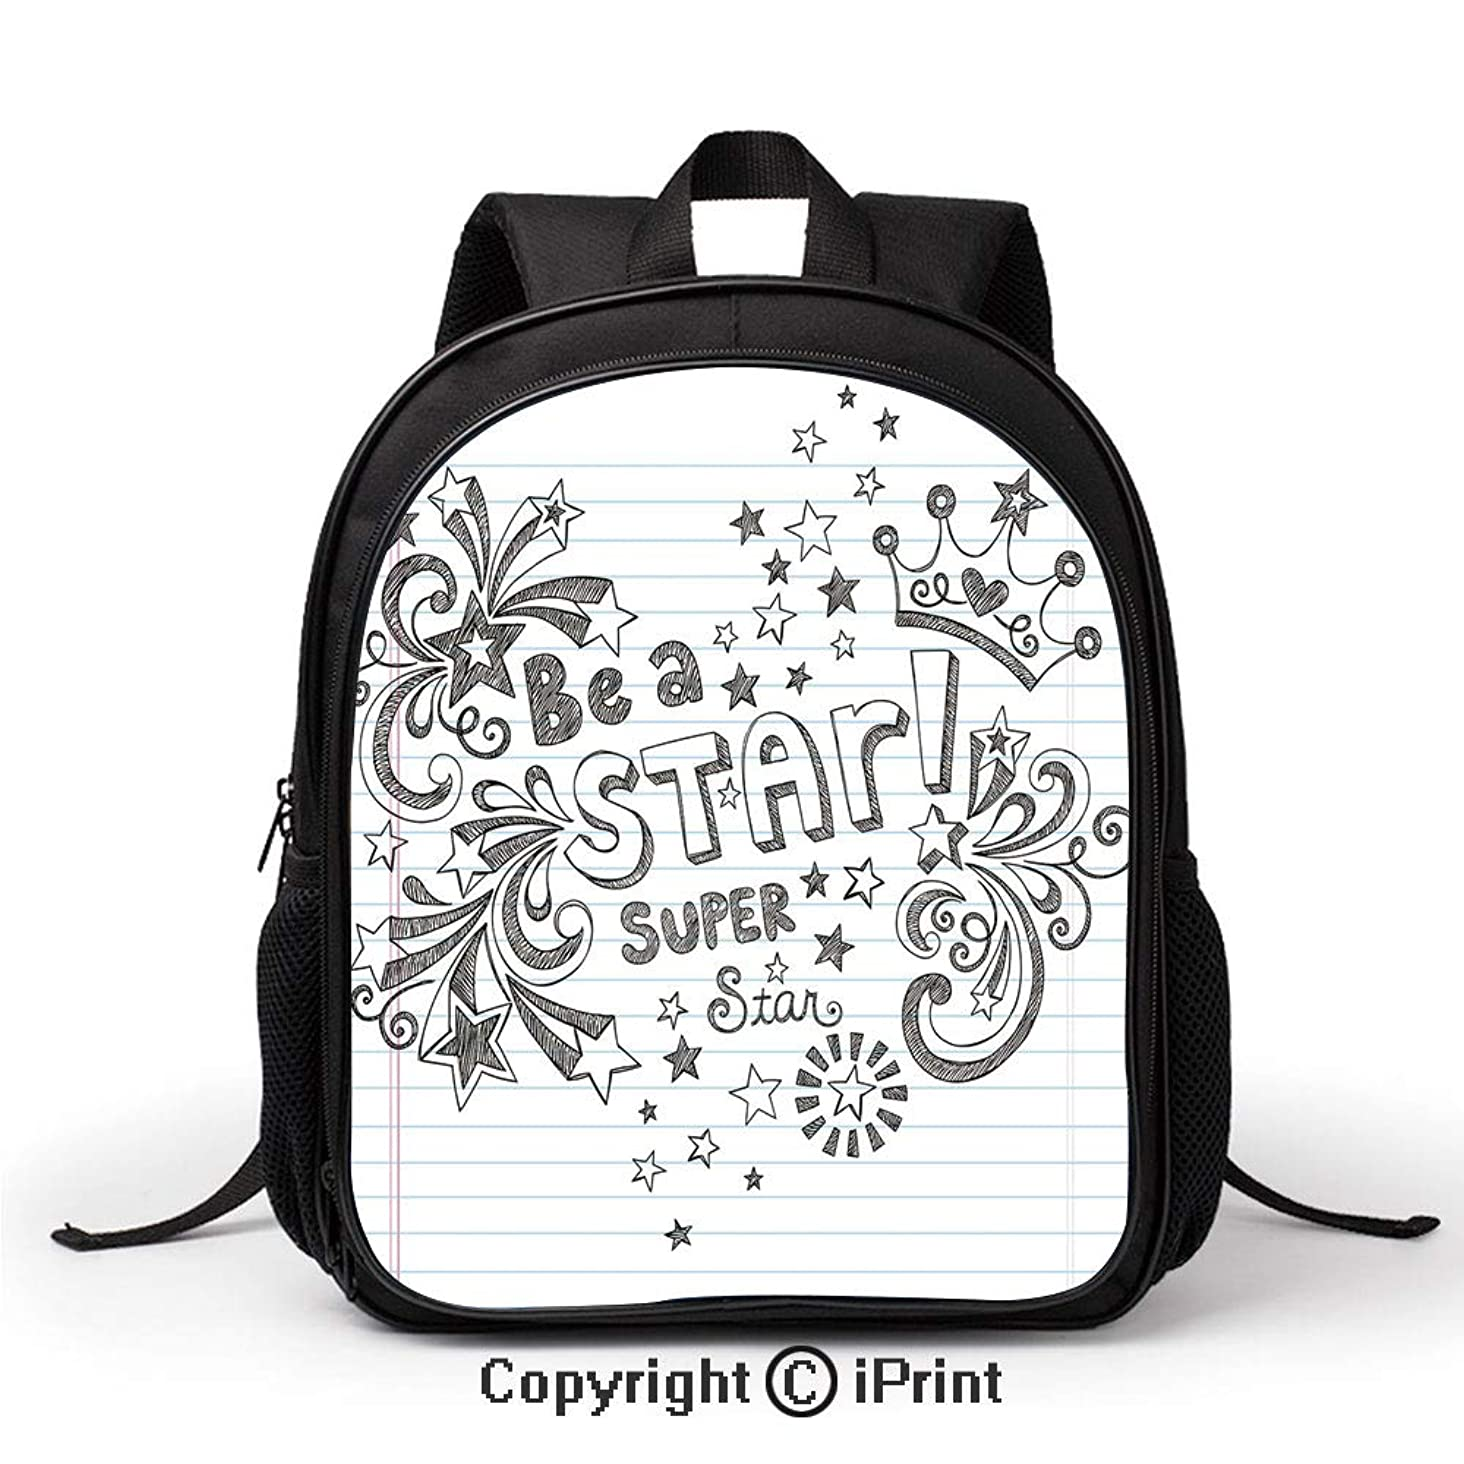 Women's Anti Theft School Bag Be A Super Star Phrase on Notebook Paper Backdrop with Stars Crown Print Backpack :Suitable for Men and Women,School,Travel,Daily use,etc,Grey White